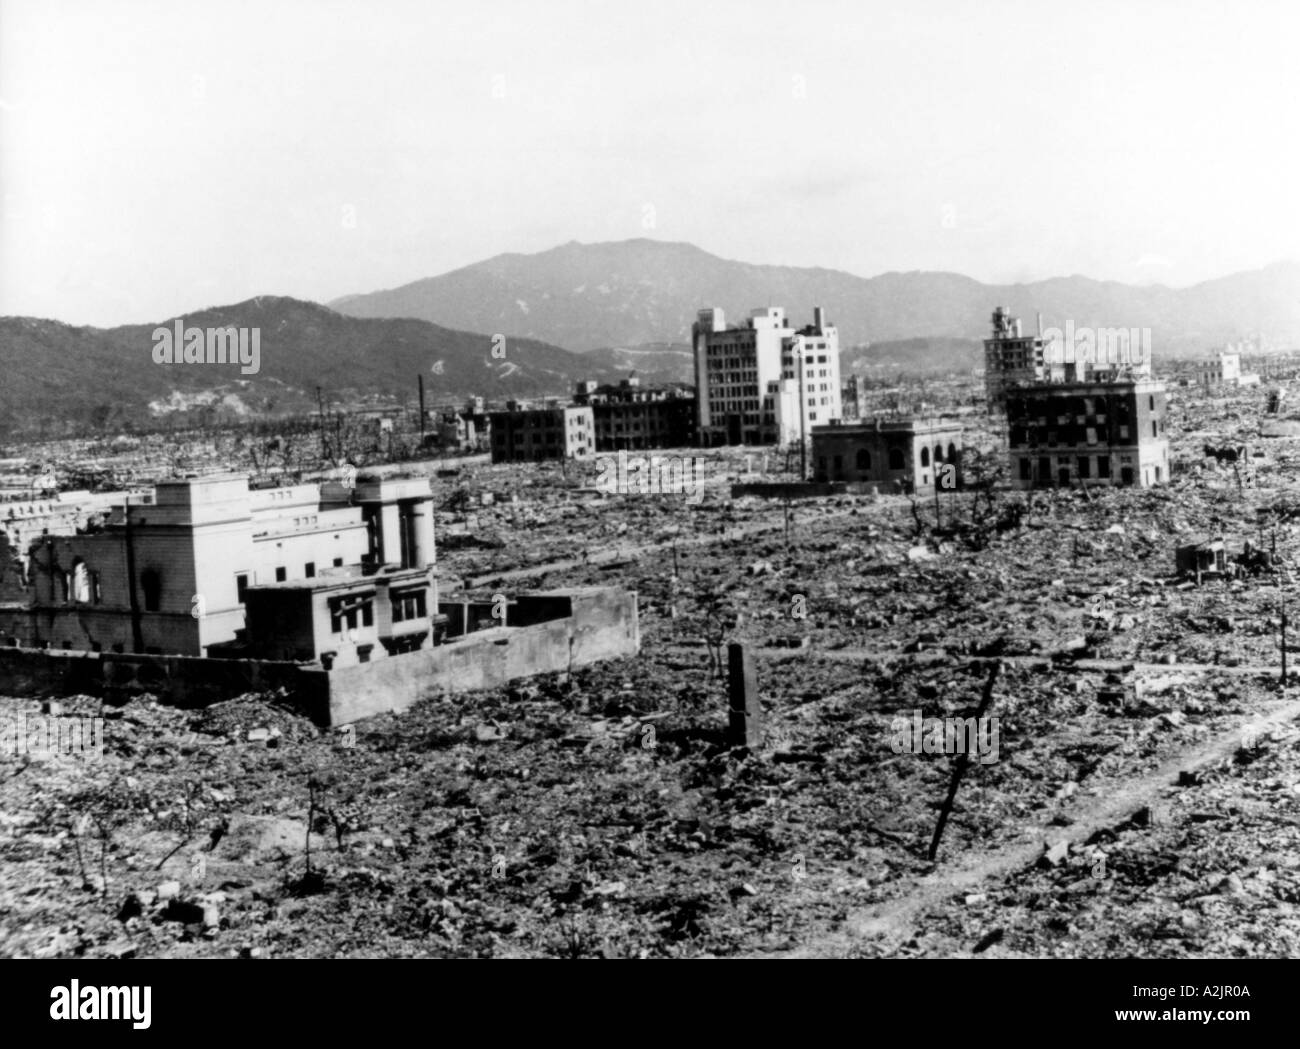 a history of dropping of atomic bomb on hiroshima On the clear morning of august 6, the first atomic bomb, nicknamed little boy, was dropped on the city of hiroshima leveling over 60 percent of the city, 70,000 residents died instantaneously in a searing flash of heat.